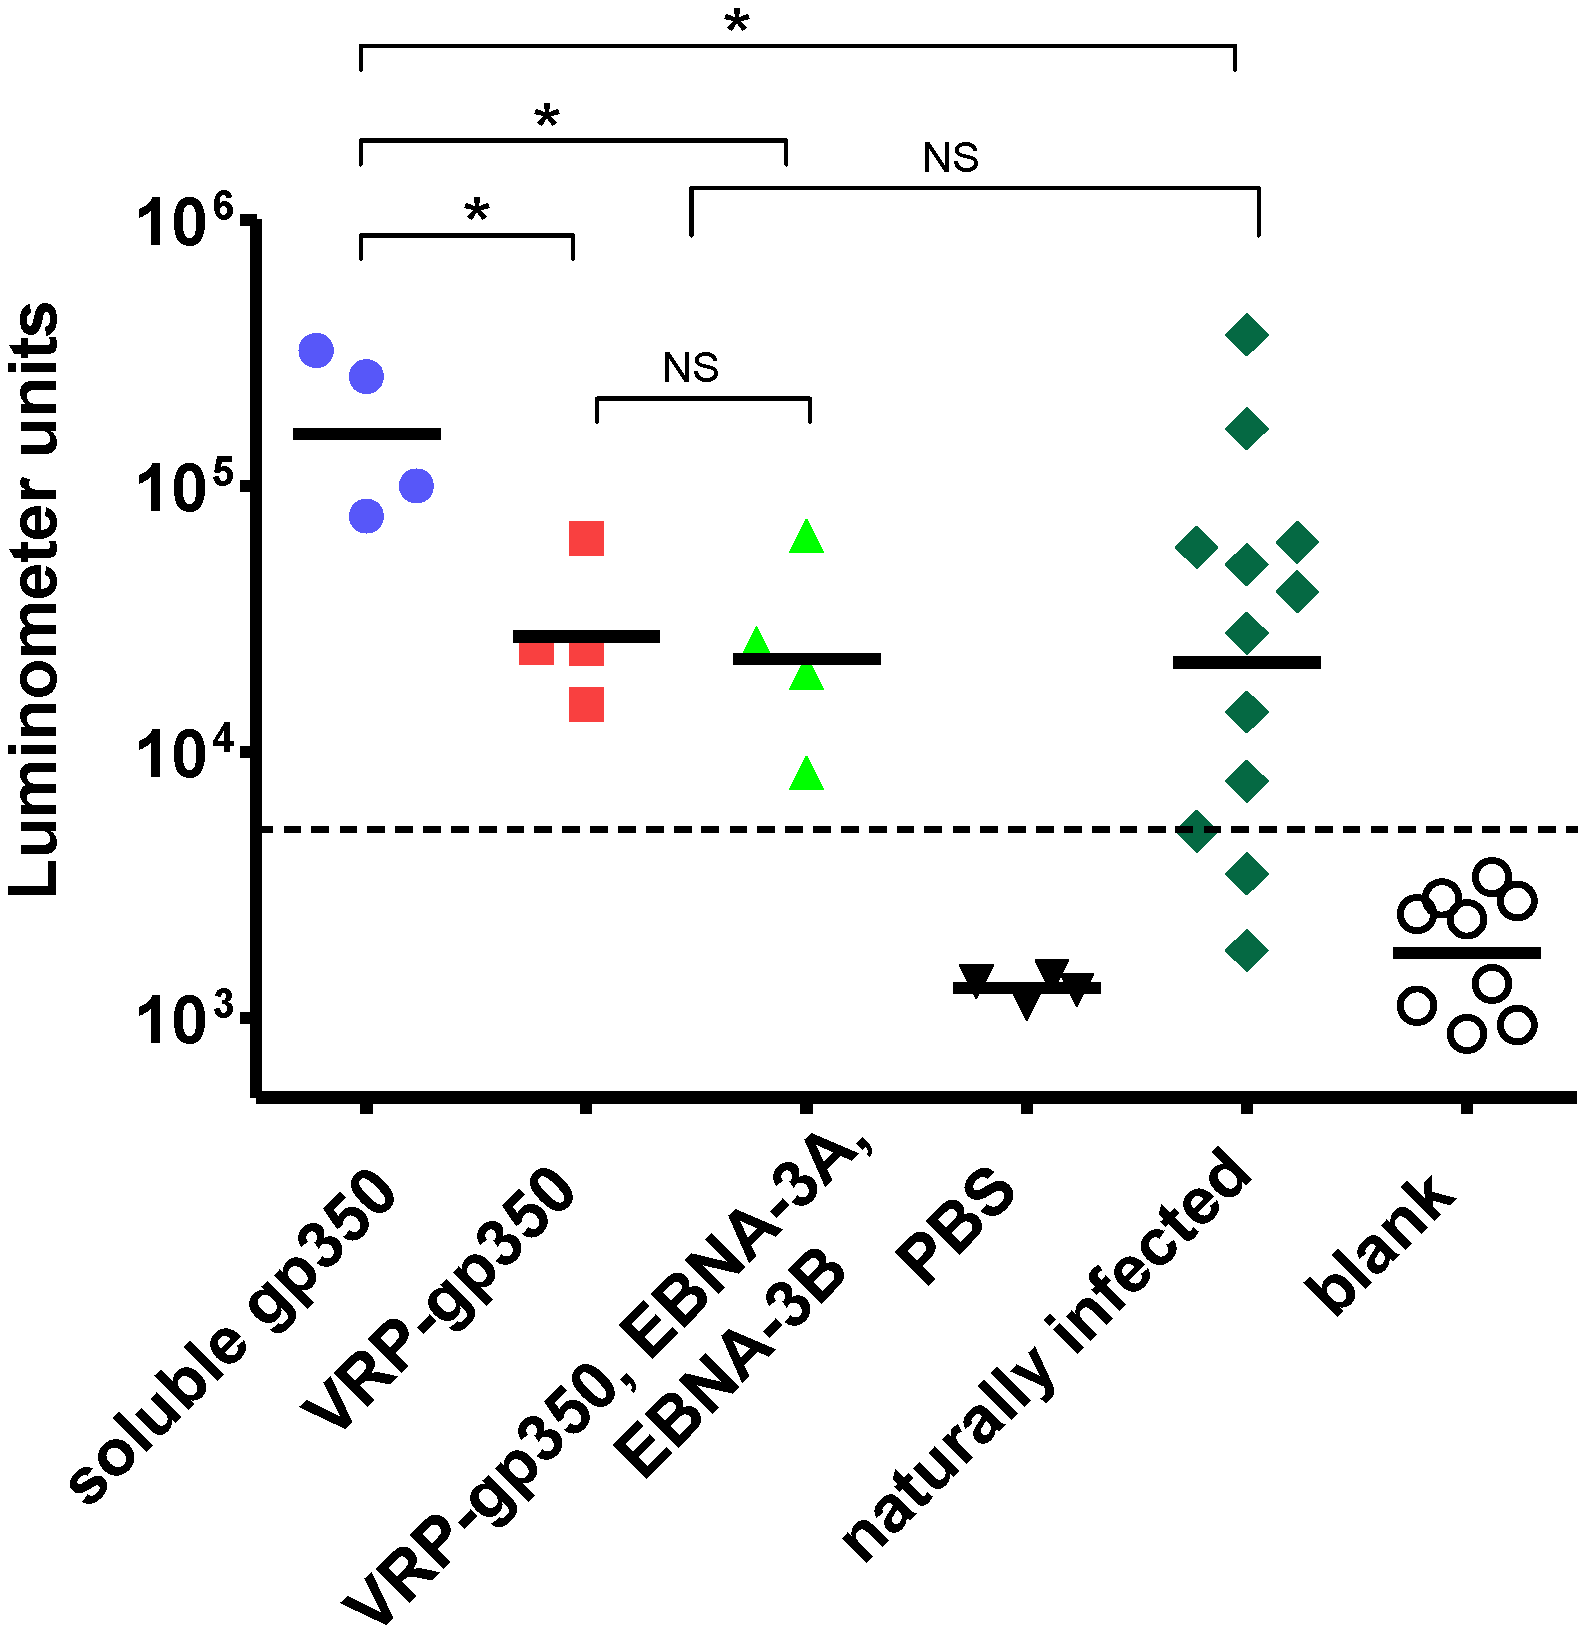 Detection of gp350 antibody by luciferase immunoprecipitation assay in rhesus monkeys immunized with soluble gp350, VRP-gp350, a combination of VRP-350, VRP-EBNA-3A, and VRP-EBNA-3B, or PBS before challenge with wild-type virus.